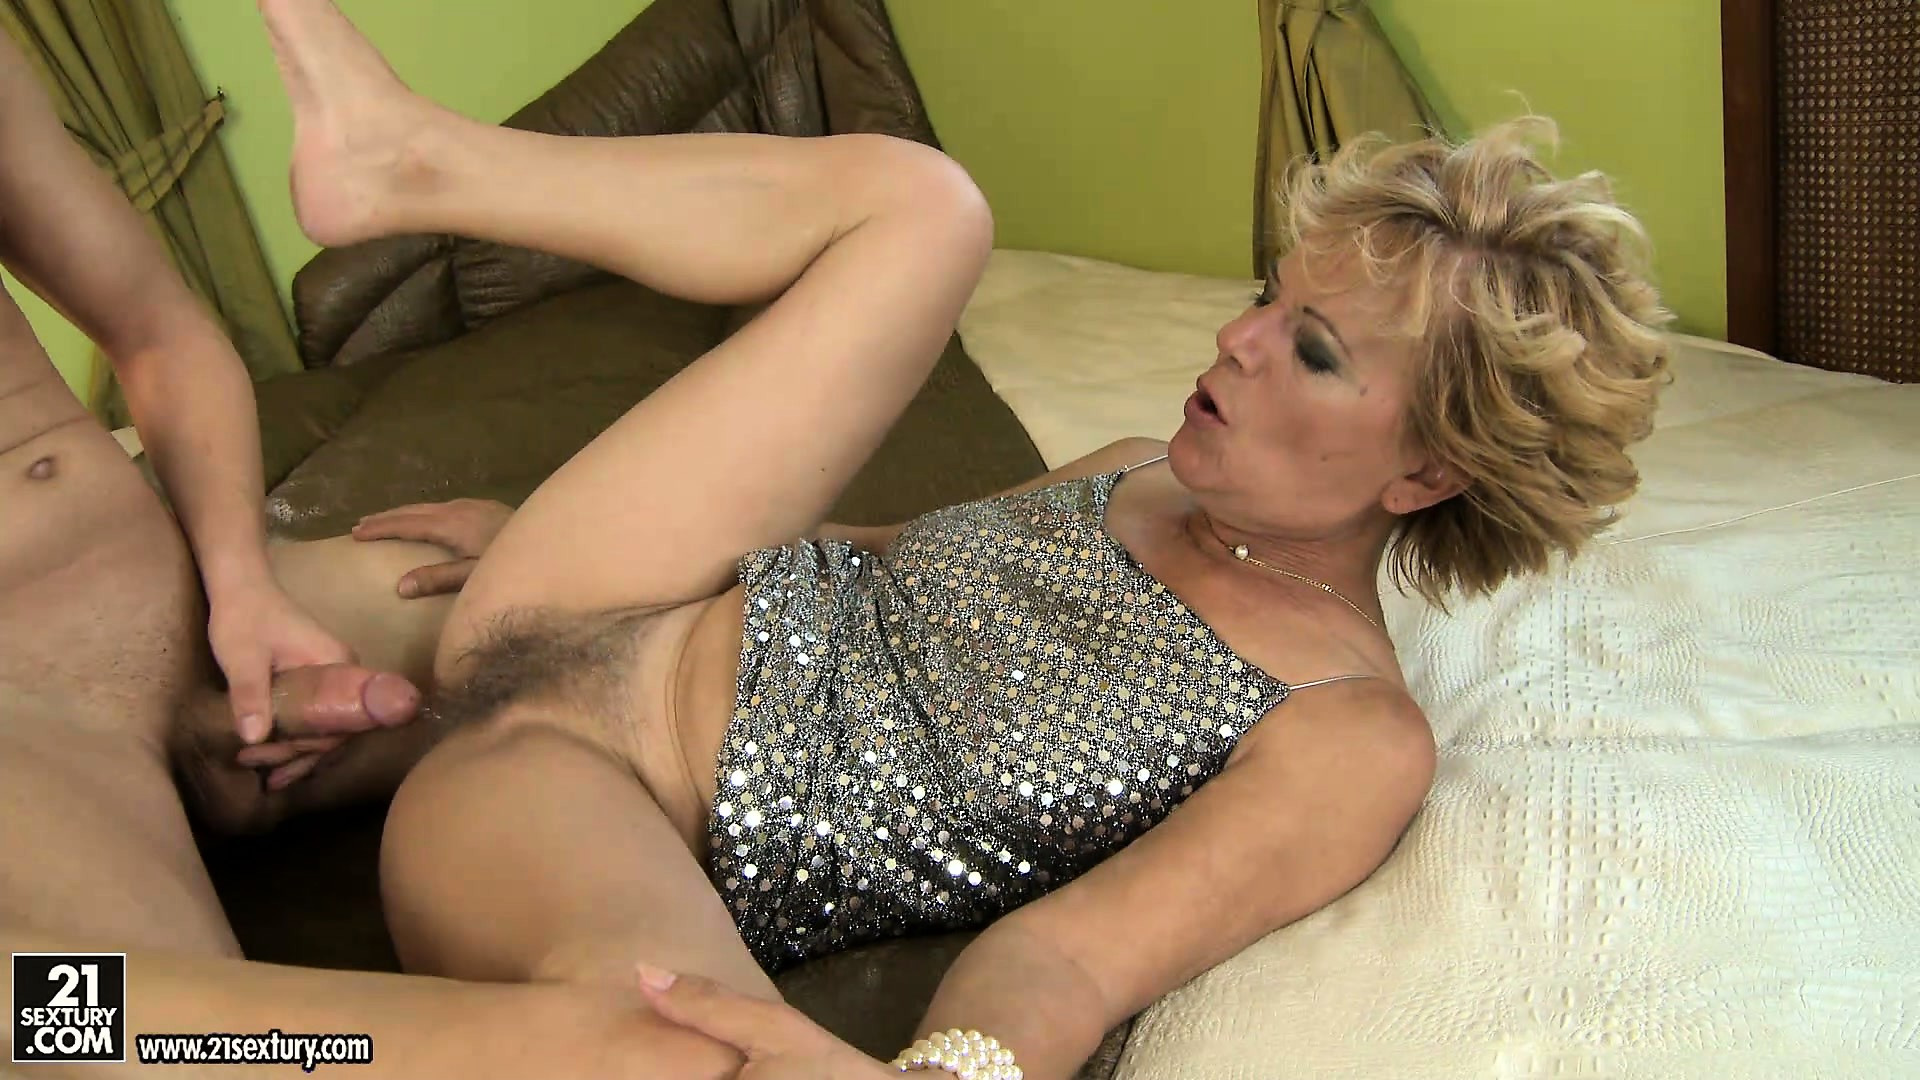 Sexy mature mom gets hot sex with young boy 8